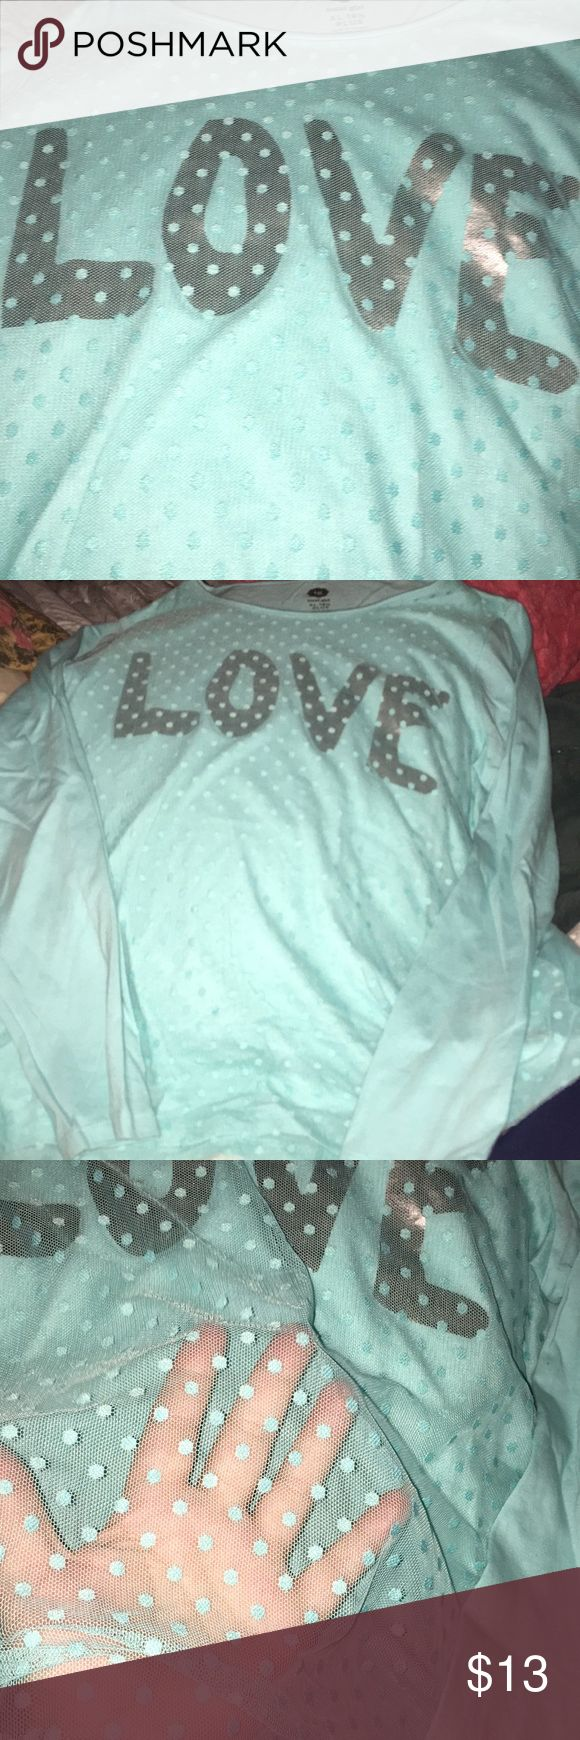 """Total Girl BRAND NEW """"LOVE"""" ♥️ shirt. Size XL Girls ADORABLE NEVER WORN SHIRT.  A LIGHT TEAL color with the letters LOVE in silver. Had a mesh front with Dots !!!   So Pretty.  NWOT. SIZE XL 18 1/2 Plus 😀 Total Girl Shirts & Tops Tees - Long Sleeve"""